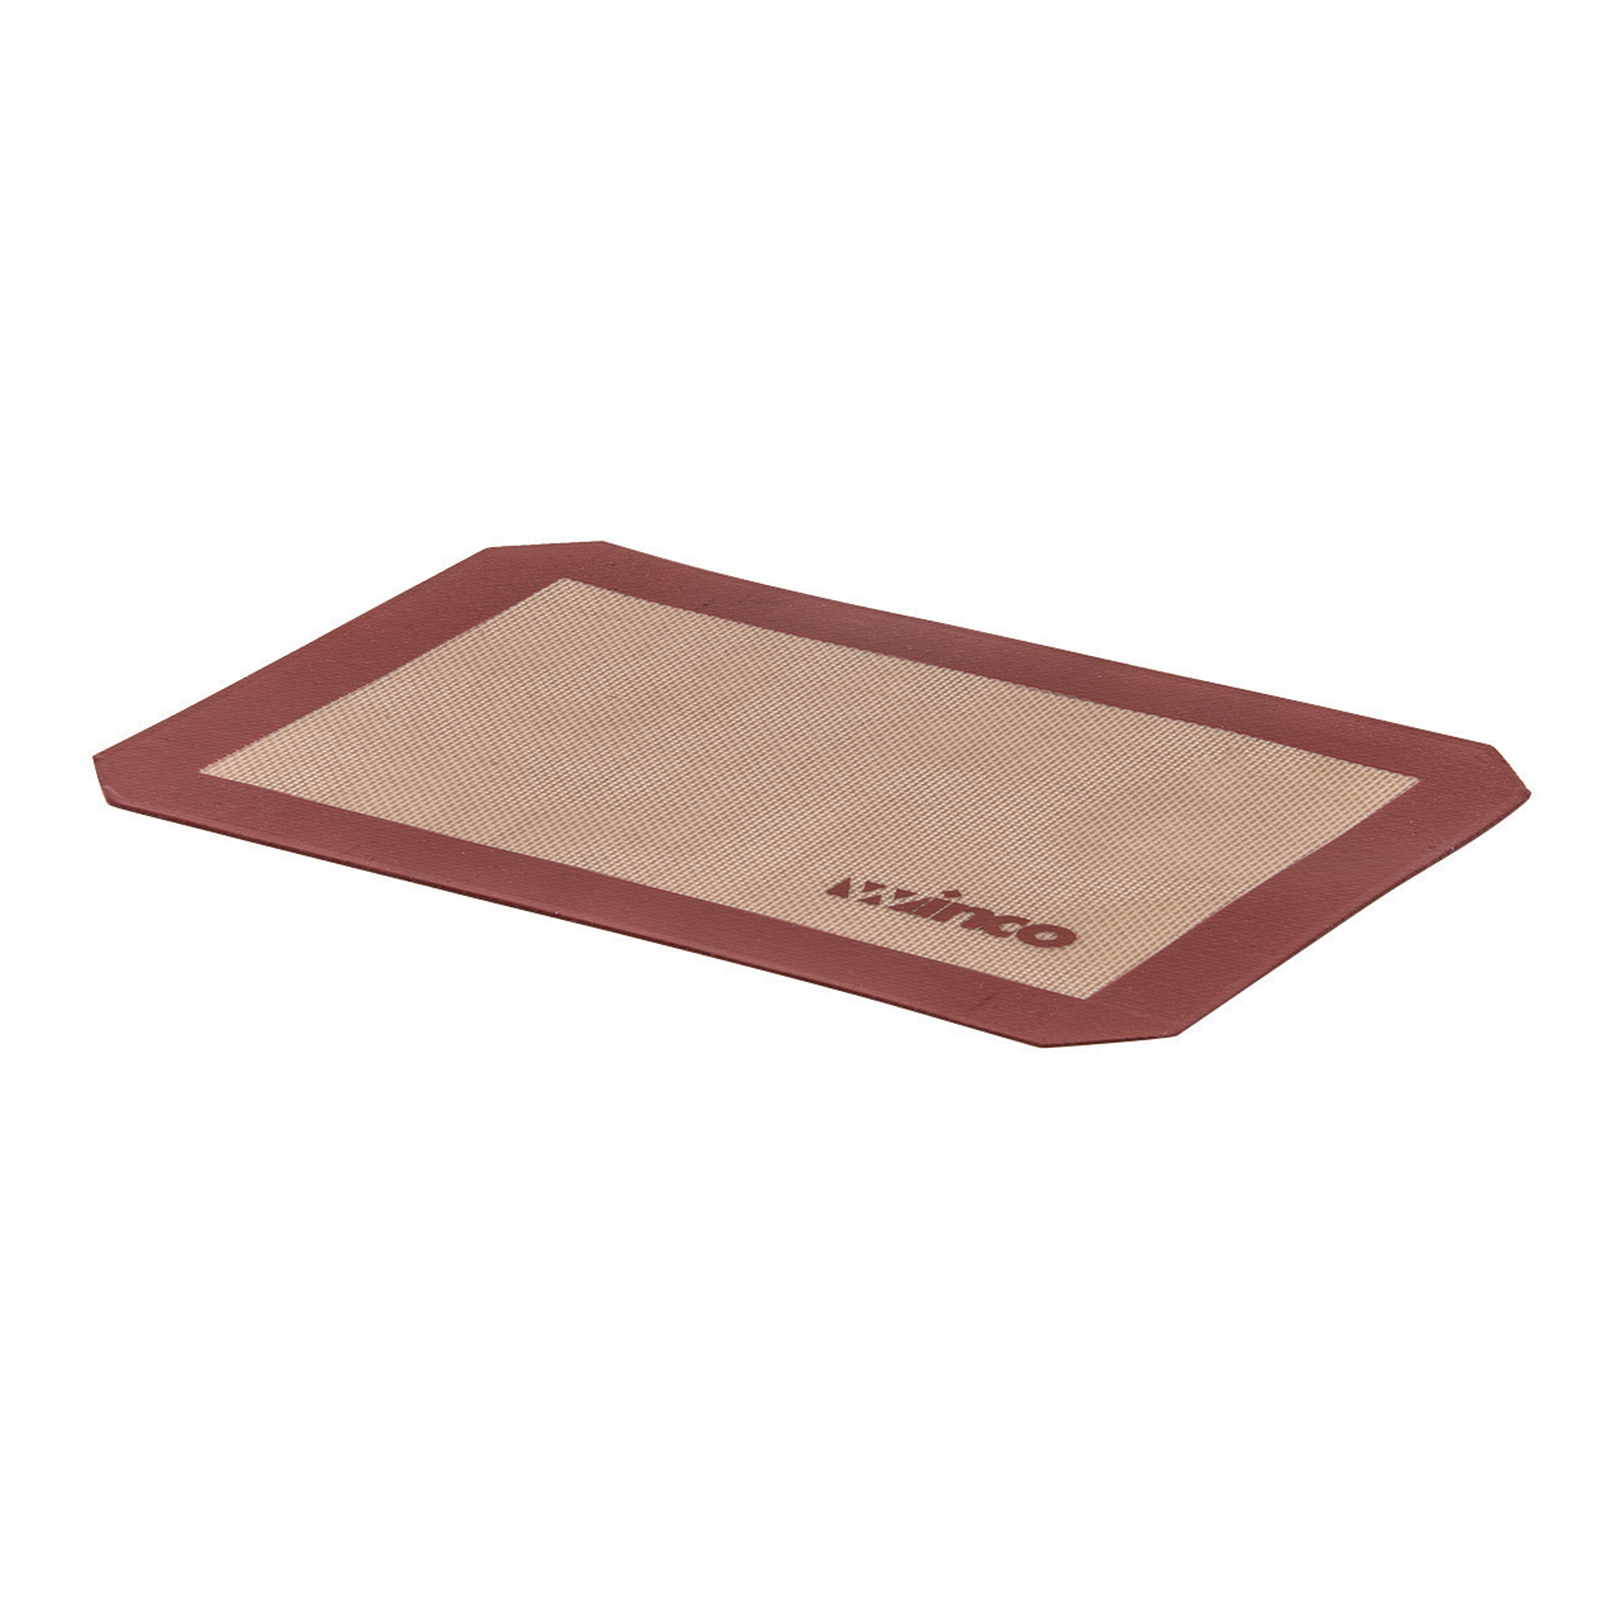 Winco SBS-21 baking mat